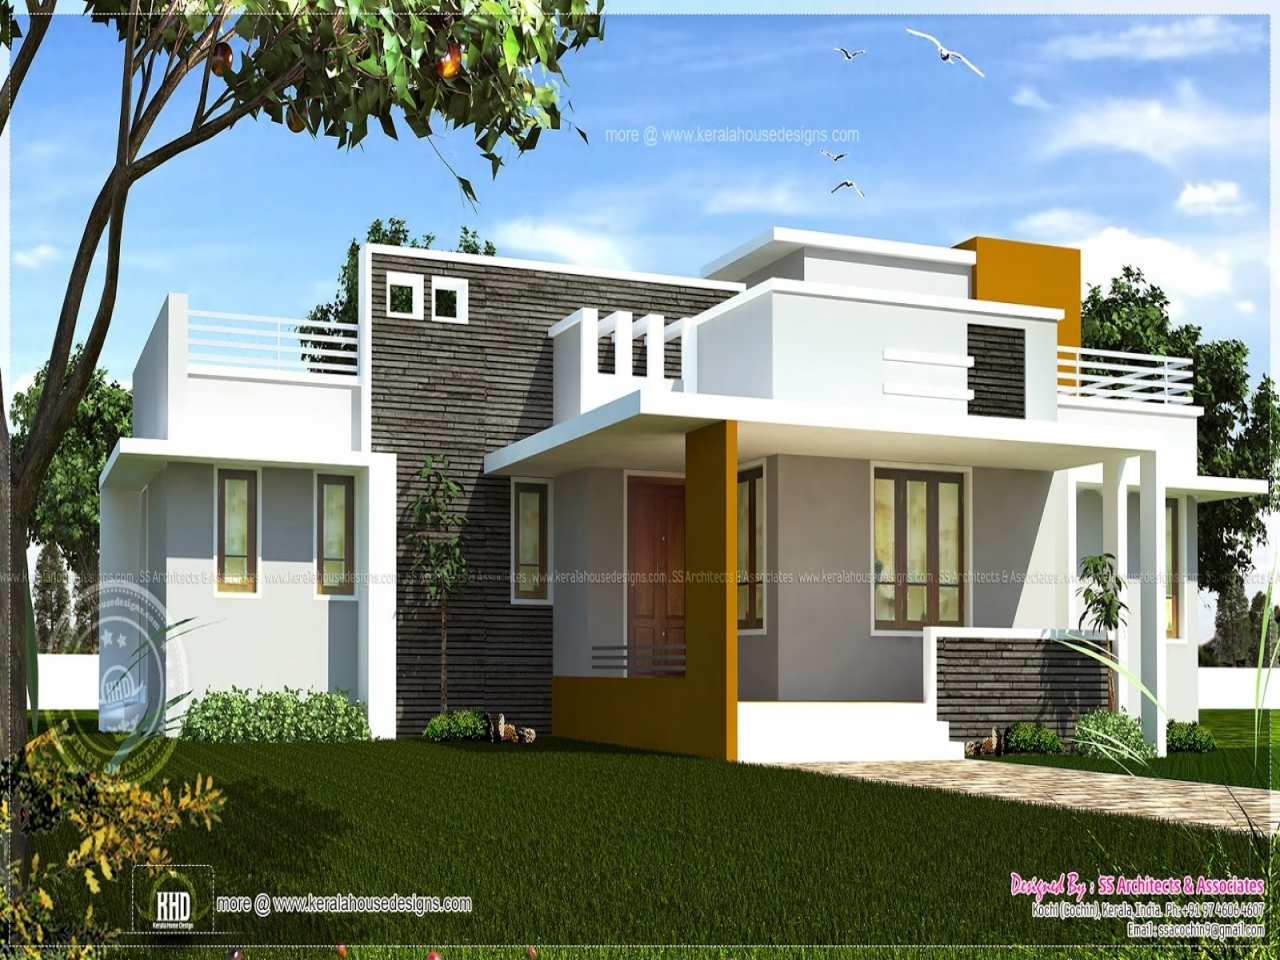 House Design One Floor Single Floor House Plans With Open Design Contemporary